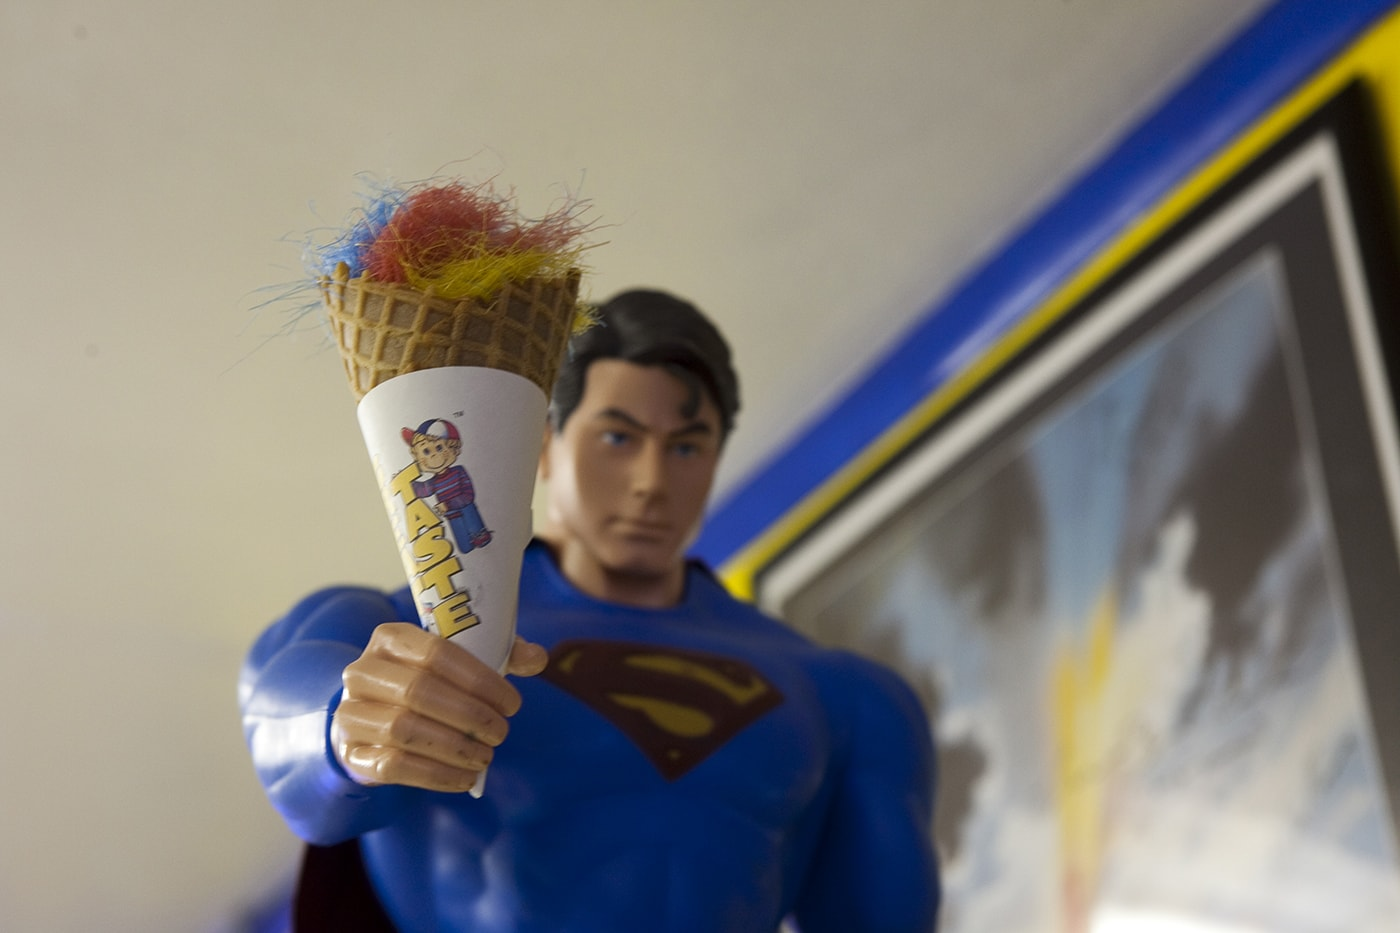 Superman statue holding ice cream cone. SuperTAM on 66 - Superman Memorabilia & Ice Cream in Carterville, Missouri